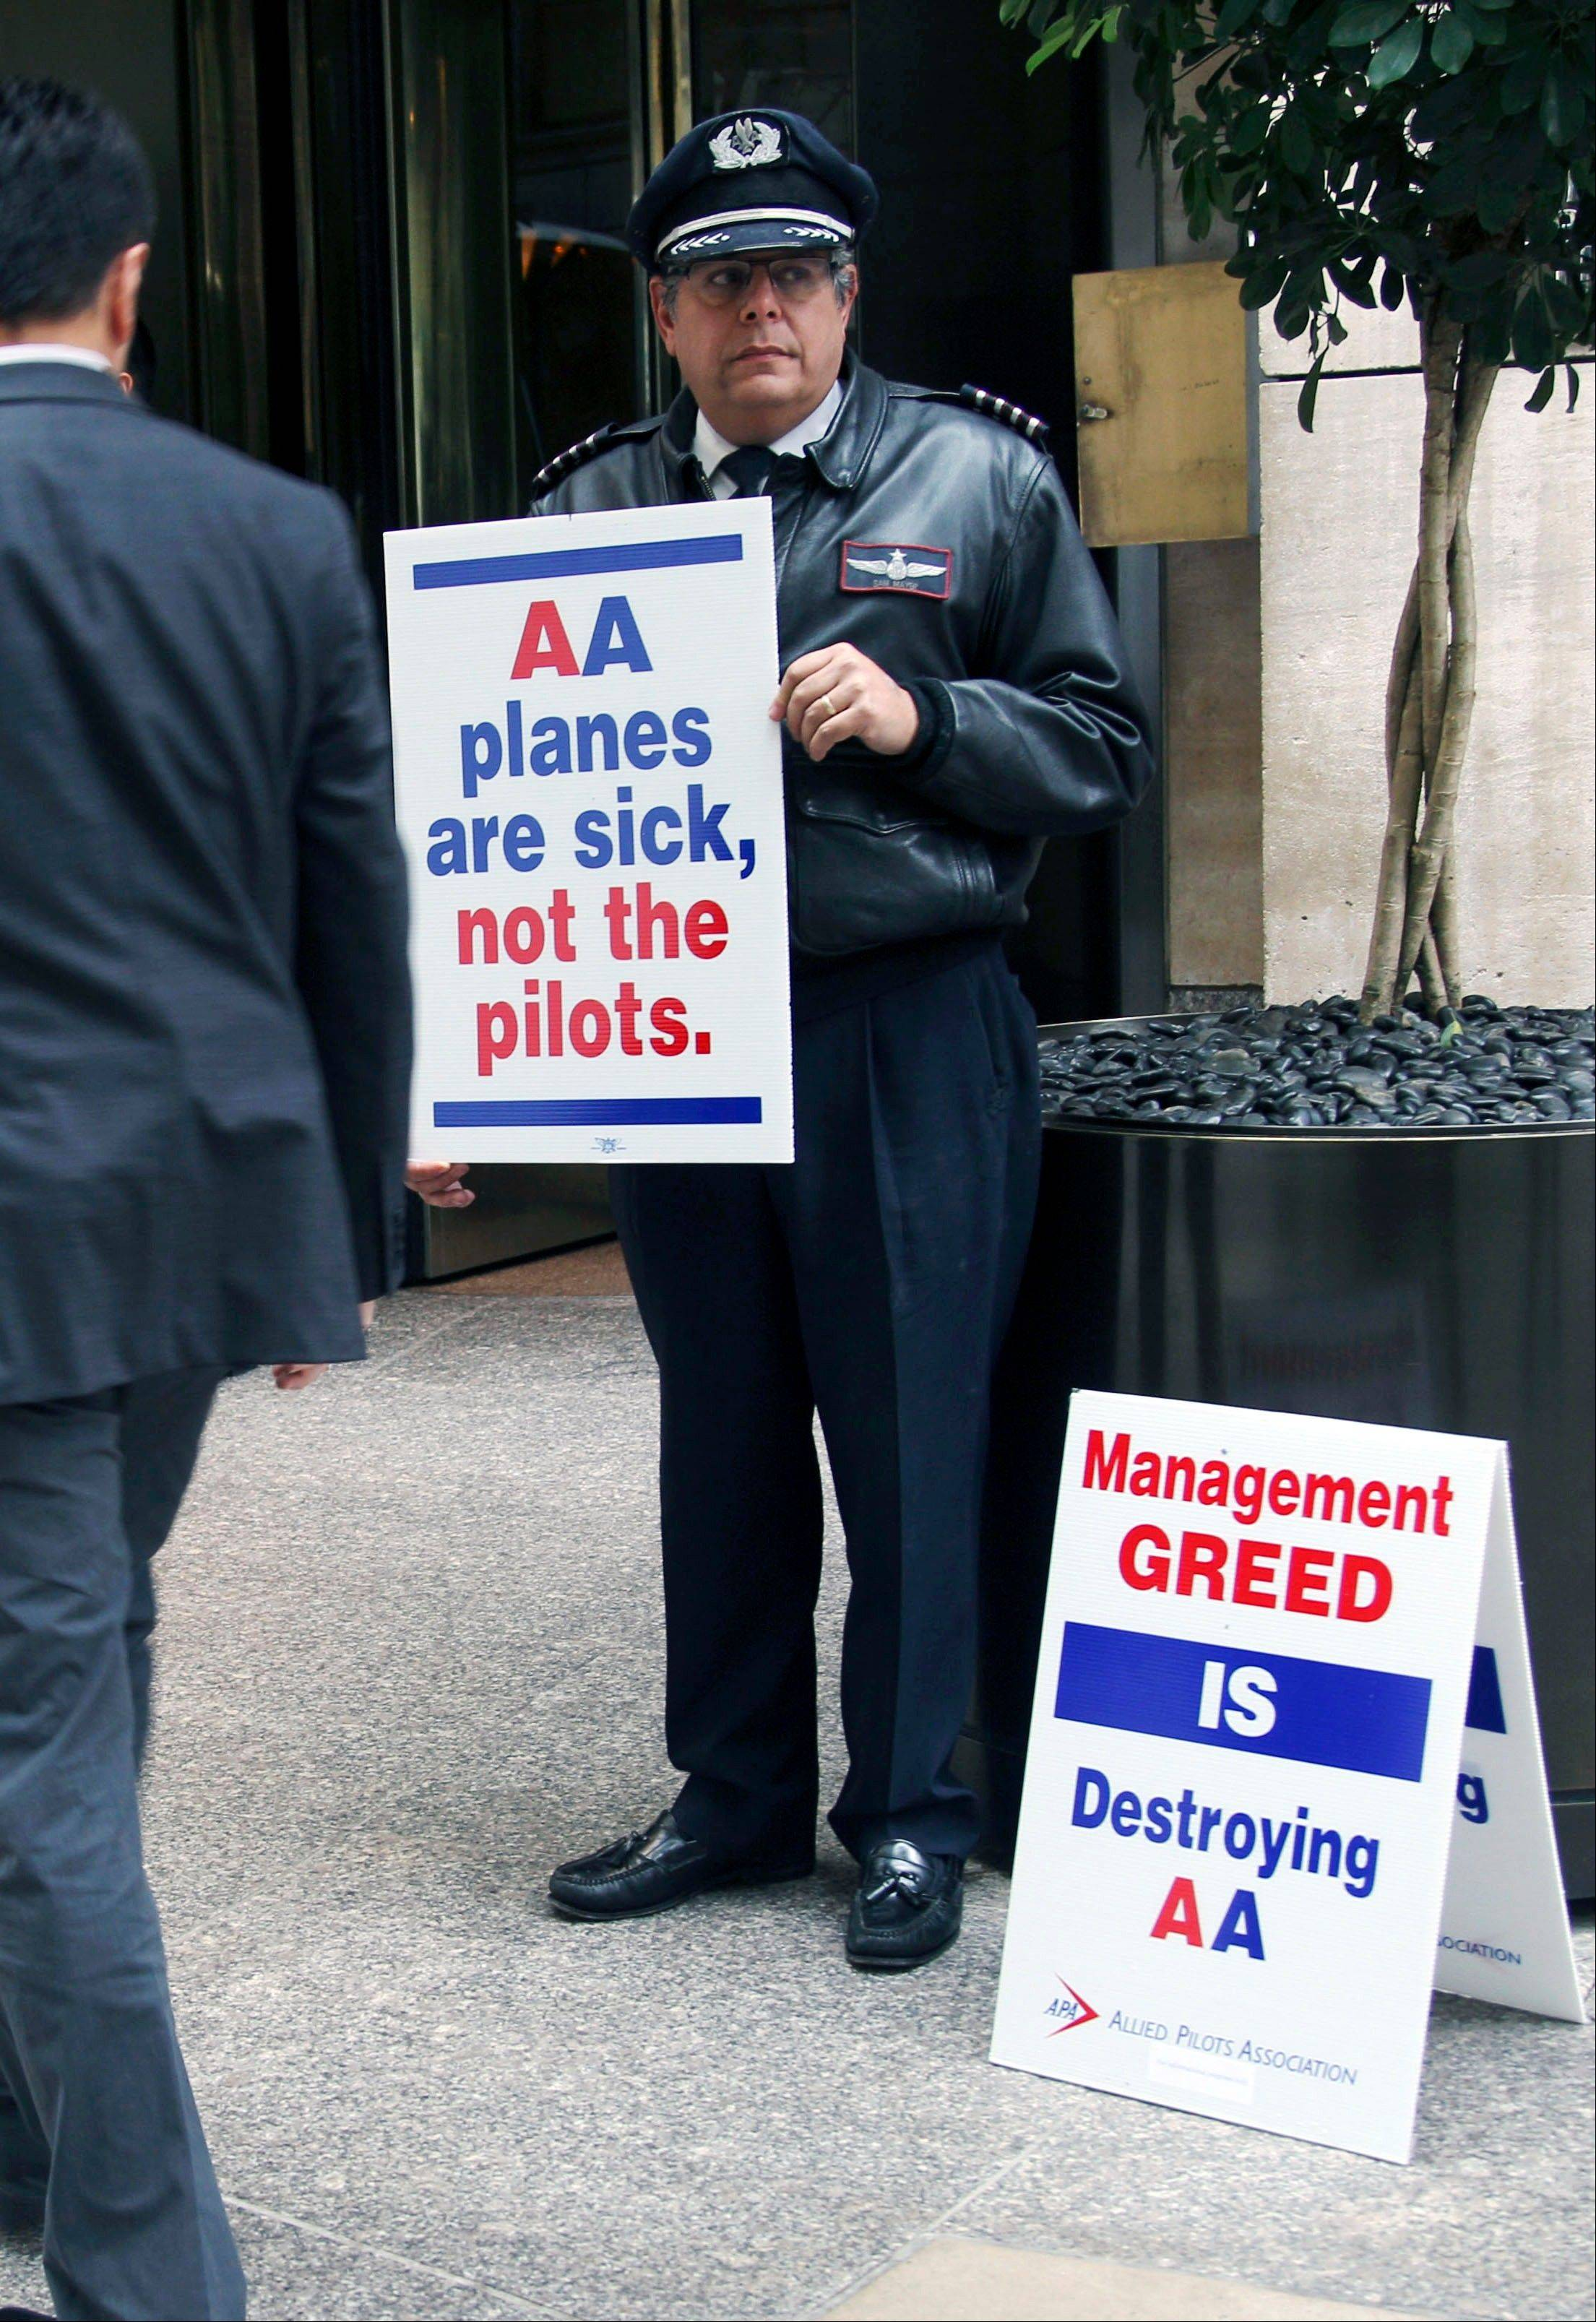 American Airlines pilot Sam Mayer pickets in front of a hotel where American Airlines CEO Tom Horton held a meeting with reporters, in New York, Monday, Oct. 8, 2012. In September, American Airlines saw a 7.1 percent drop in domestic passengers and its on-time performance fell to 59 percent, below other big airlines. The drop is attributed to pilots who are writing up extra maintenance requests as part of an unsanctioned job action. If that wasn't bad enough, seats on three separate flights came loose.